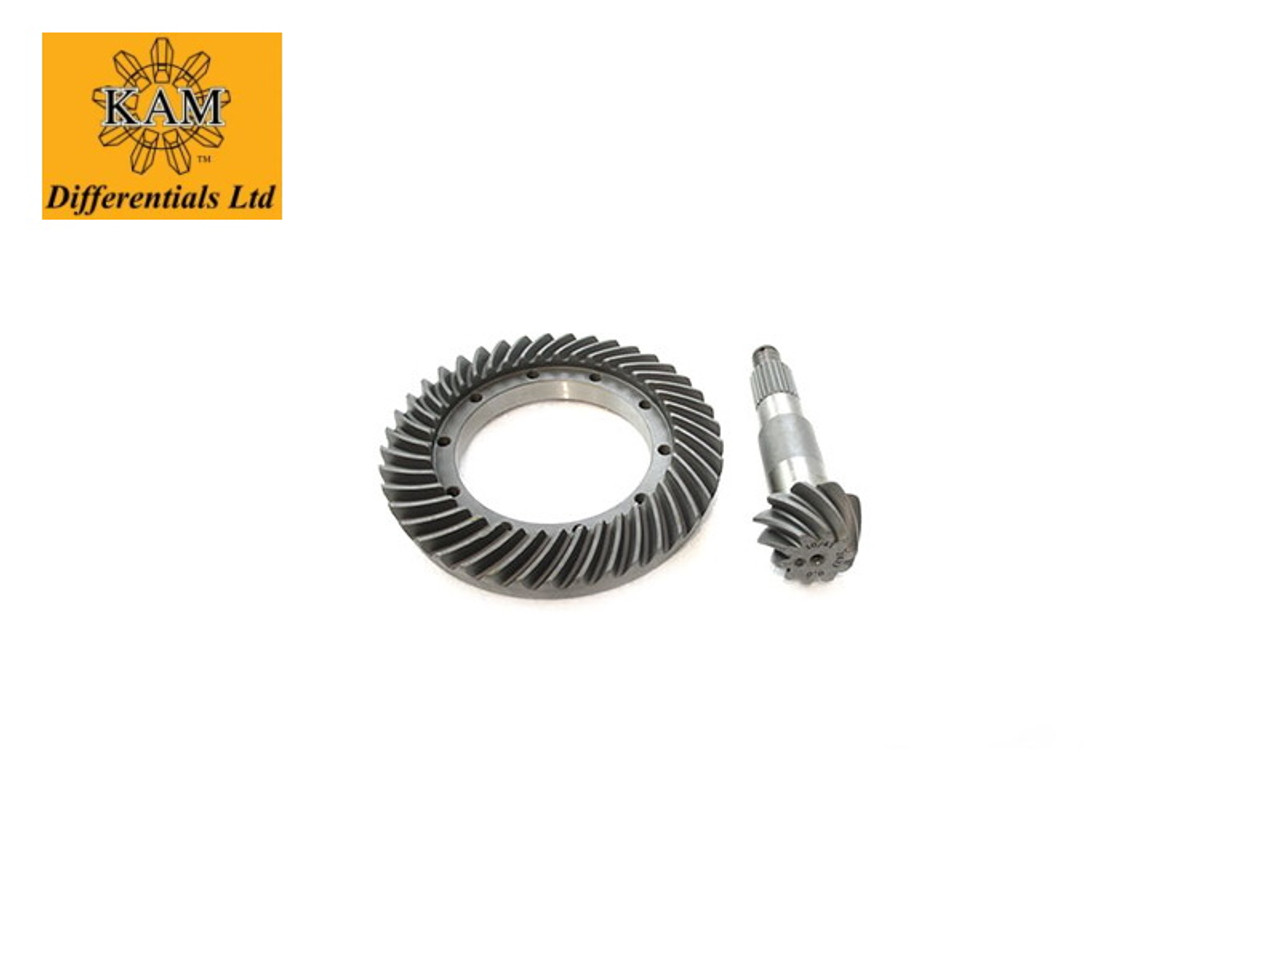 KAM 4.1 CROWN WHEEL&PINION REAR(LONG NOSE ROVER DIFF)